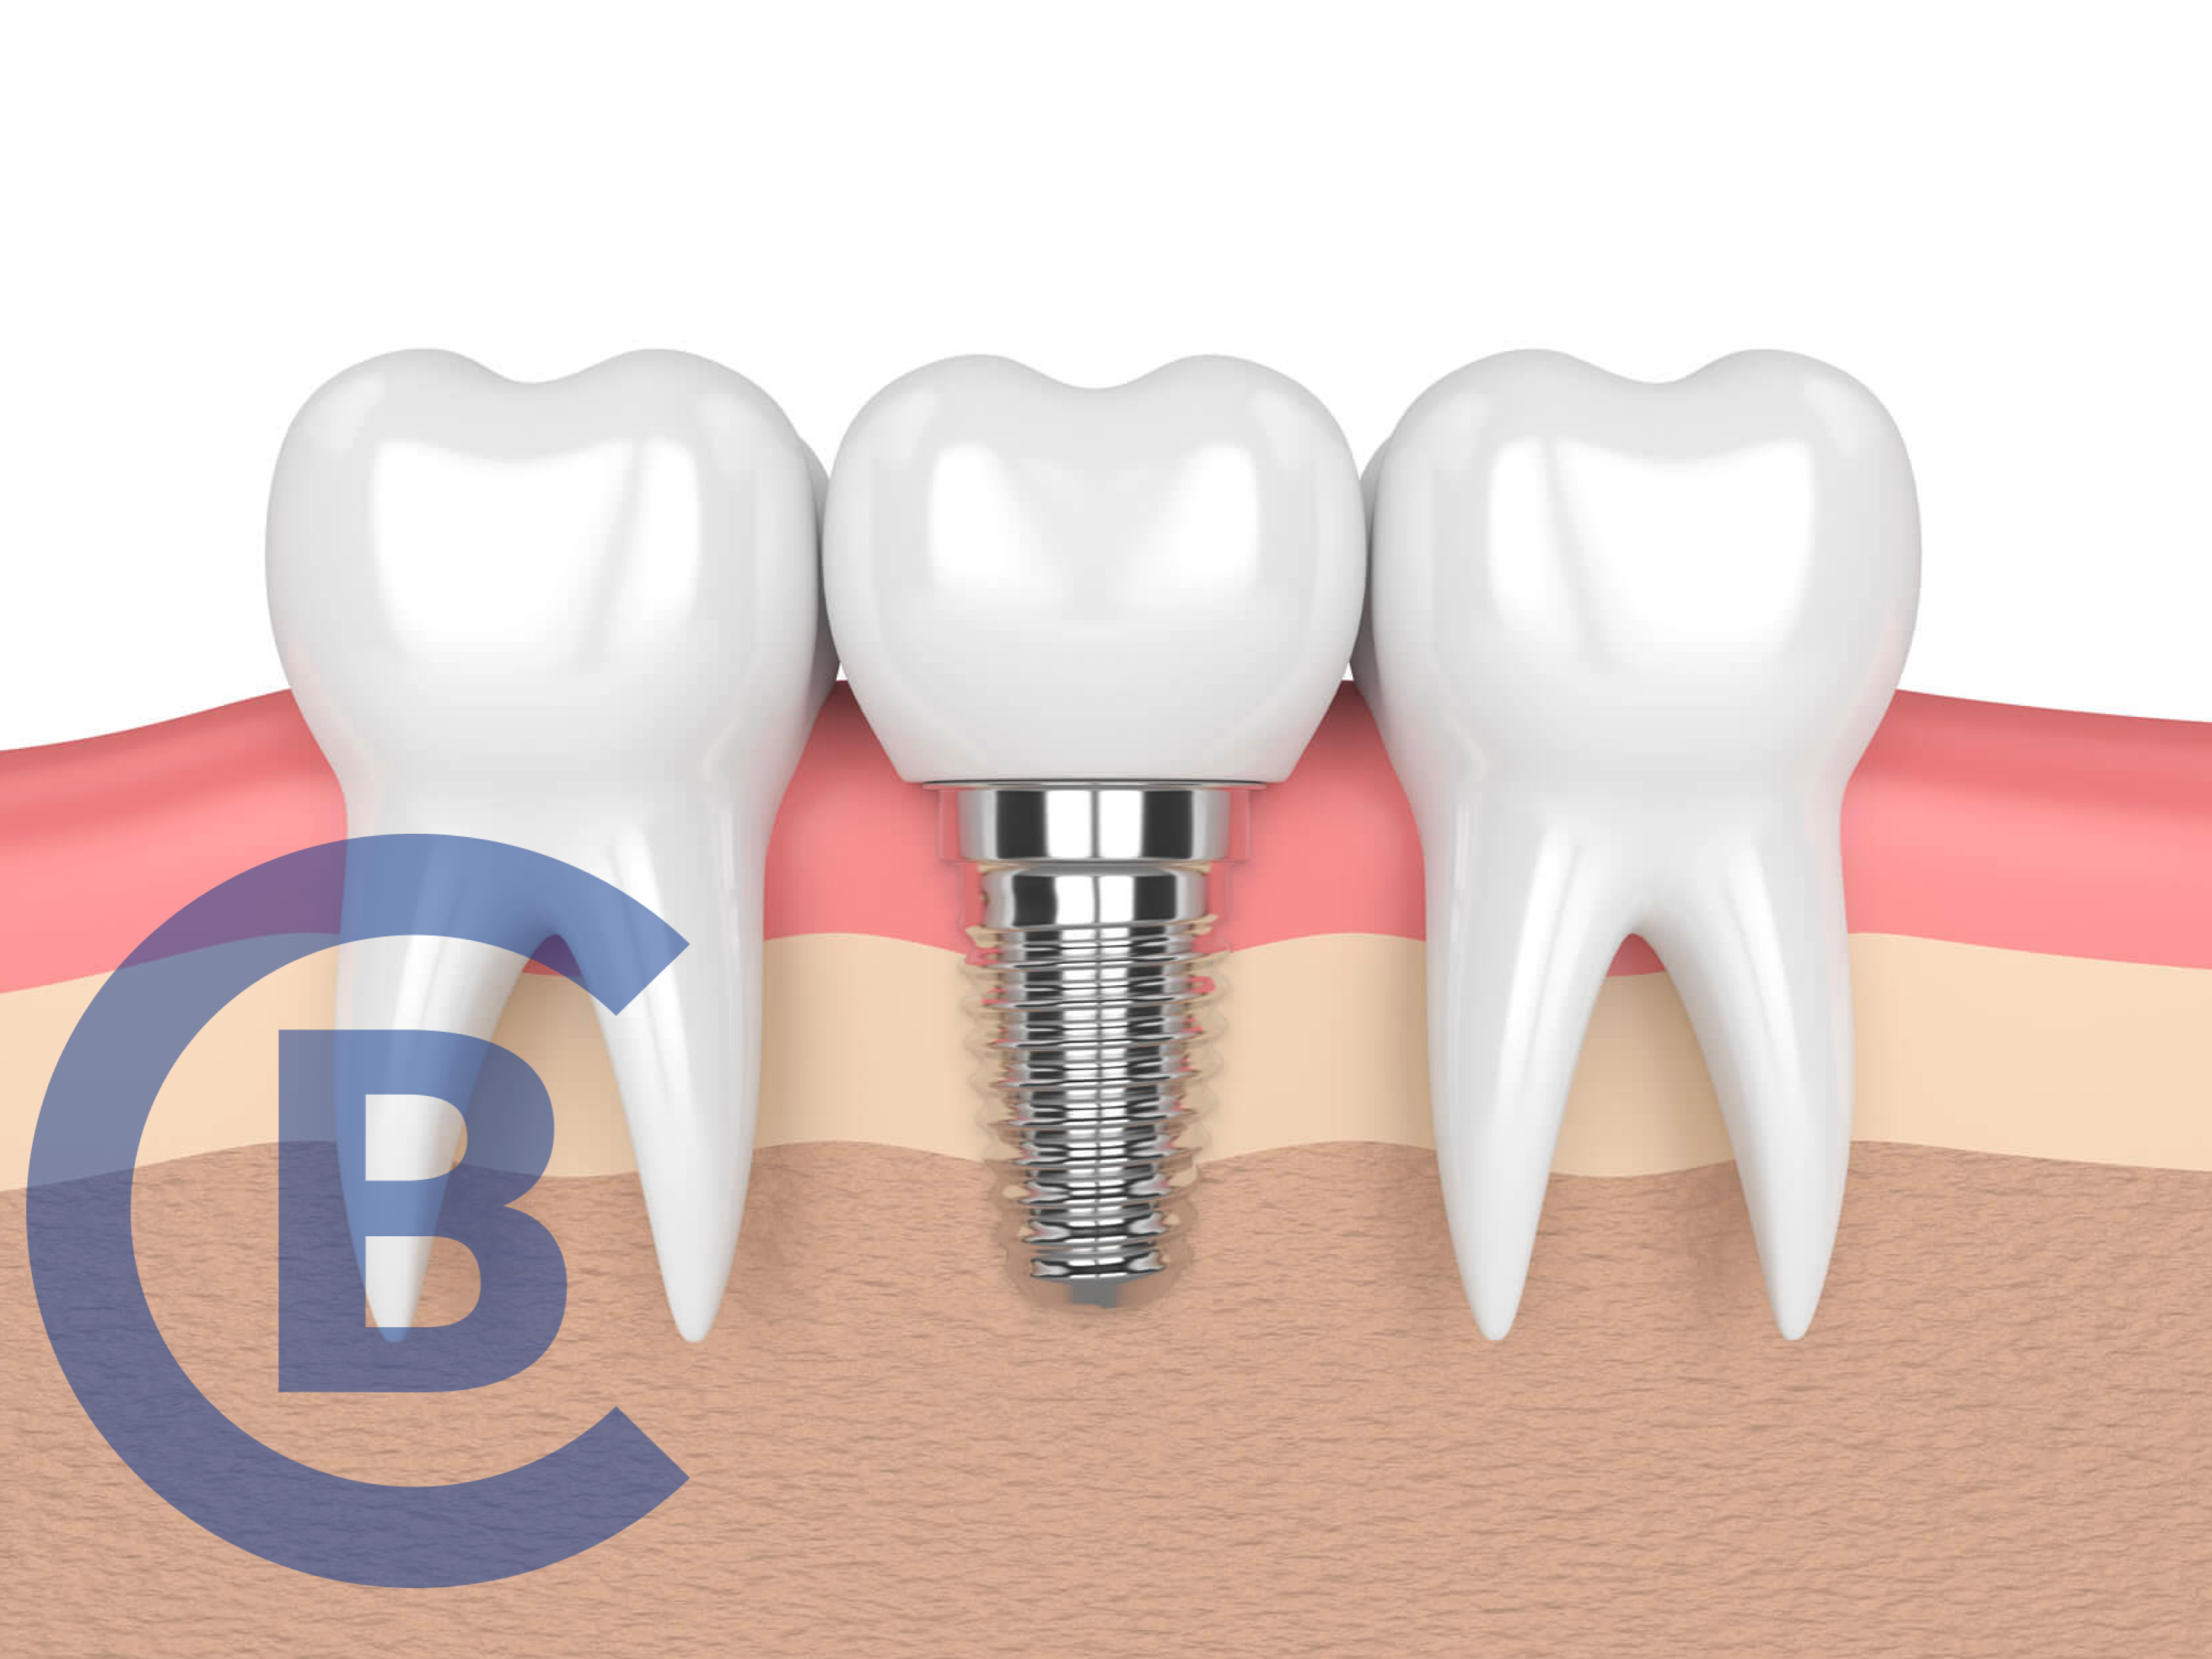 root canal vs dental implant